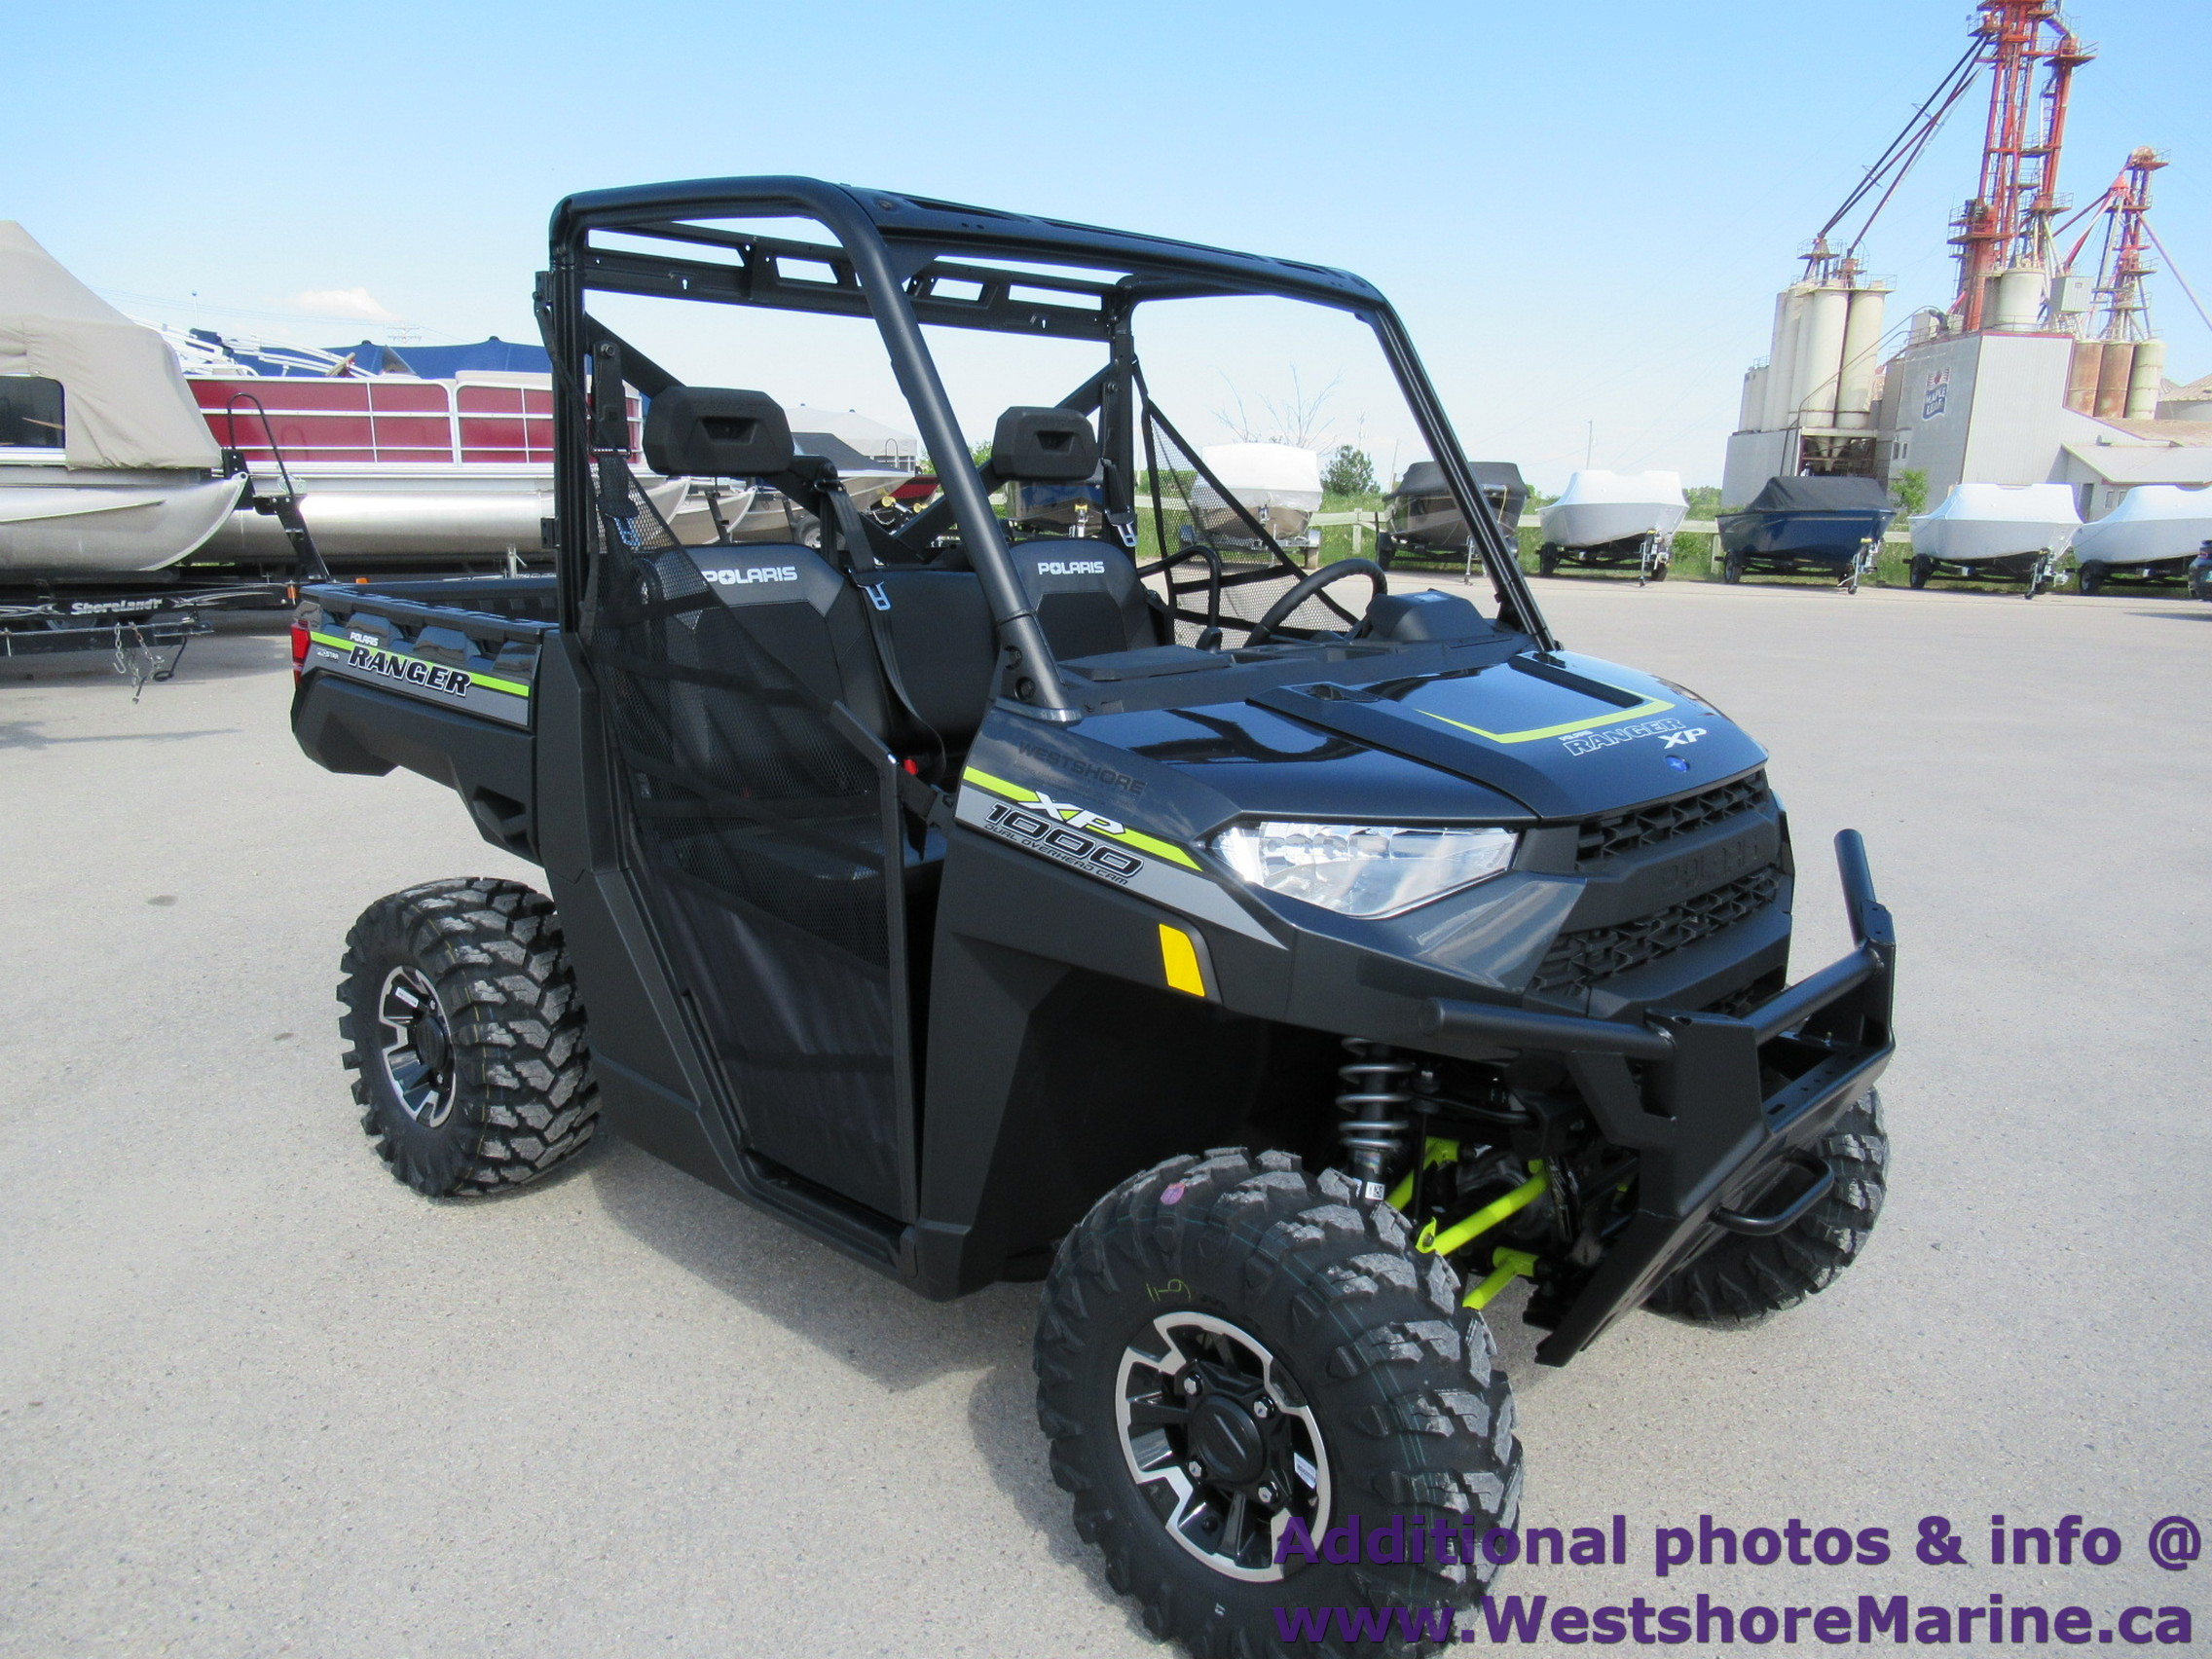 New 2019 Polaris RANGER XP 1000 EPS - PAINT MAGNETIC GREY